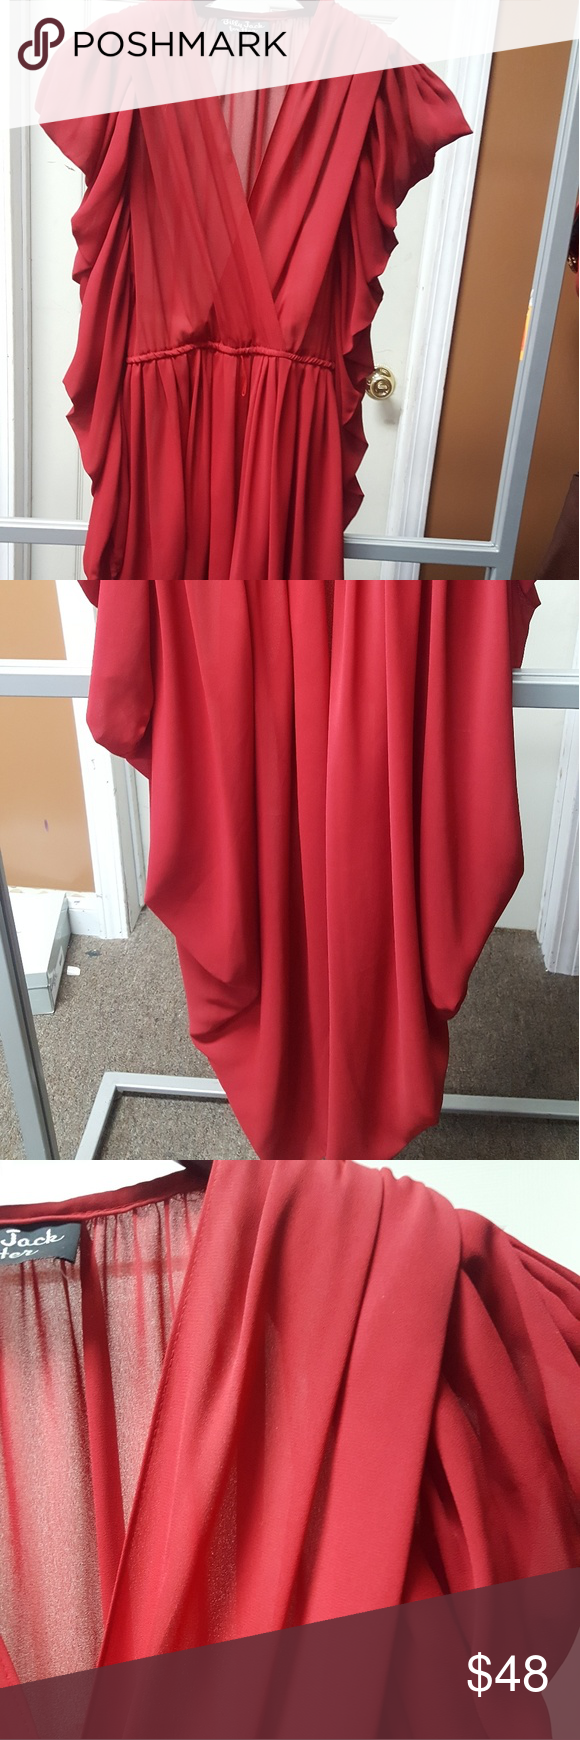 Vintage red carpet billy jack chiffon gown with be Red vintage chiffon gown with belt. billy jack Dresses Midi